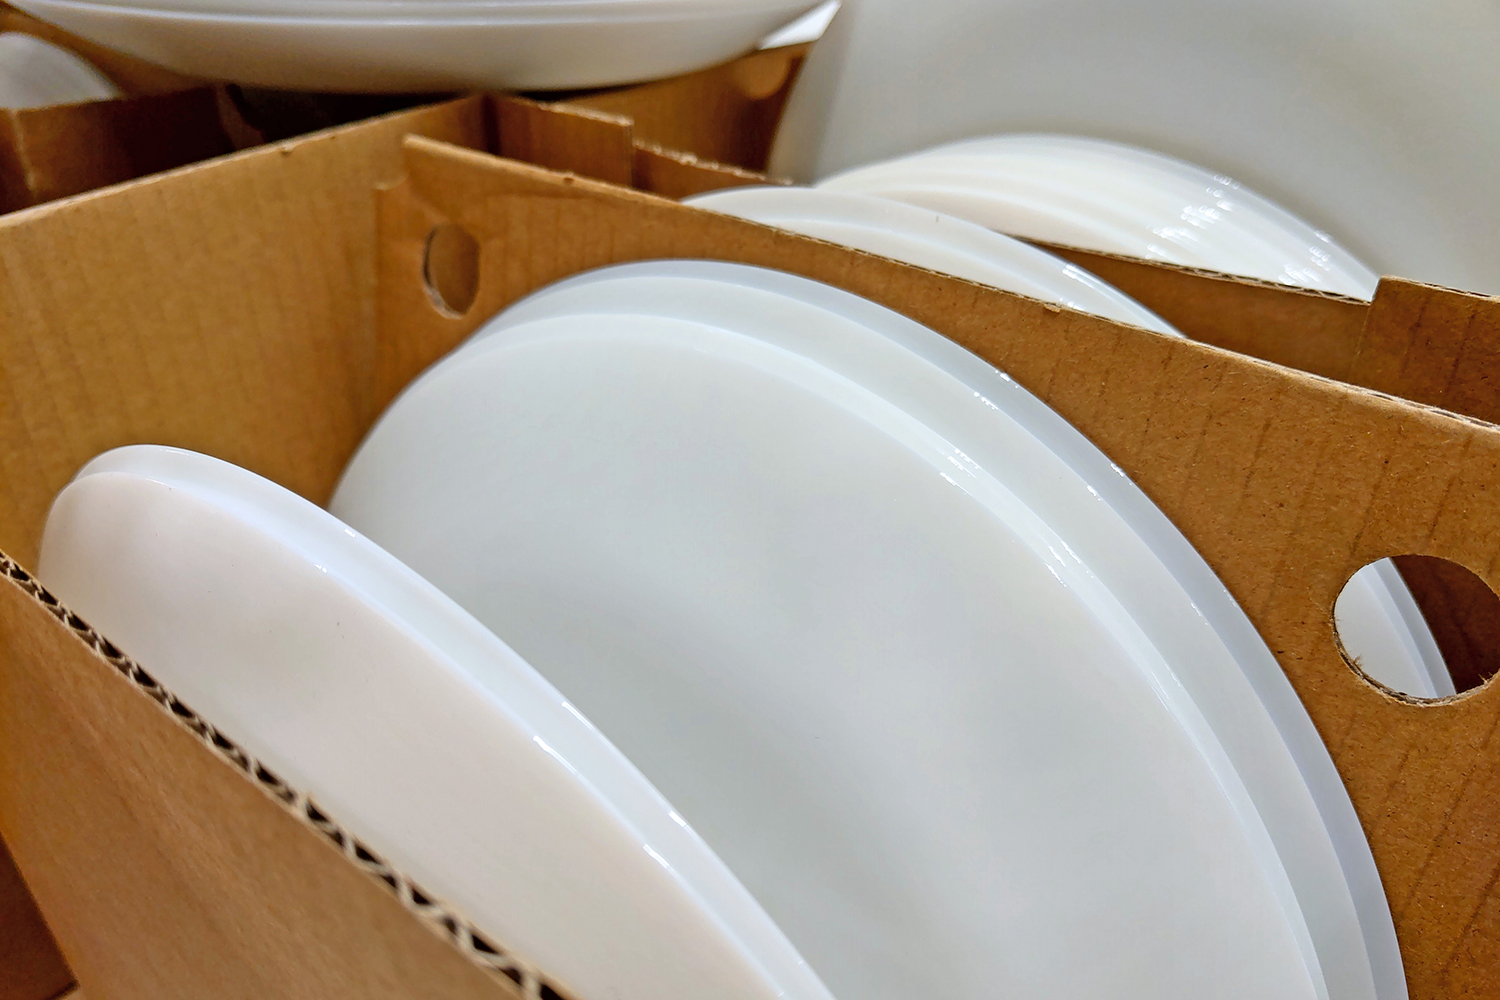 Dishes in the Moving Box